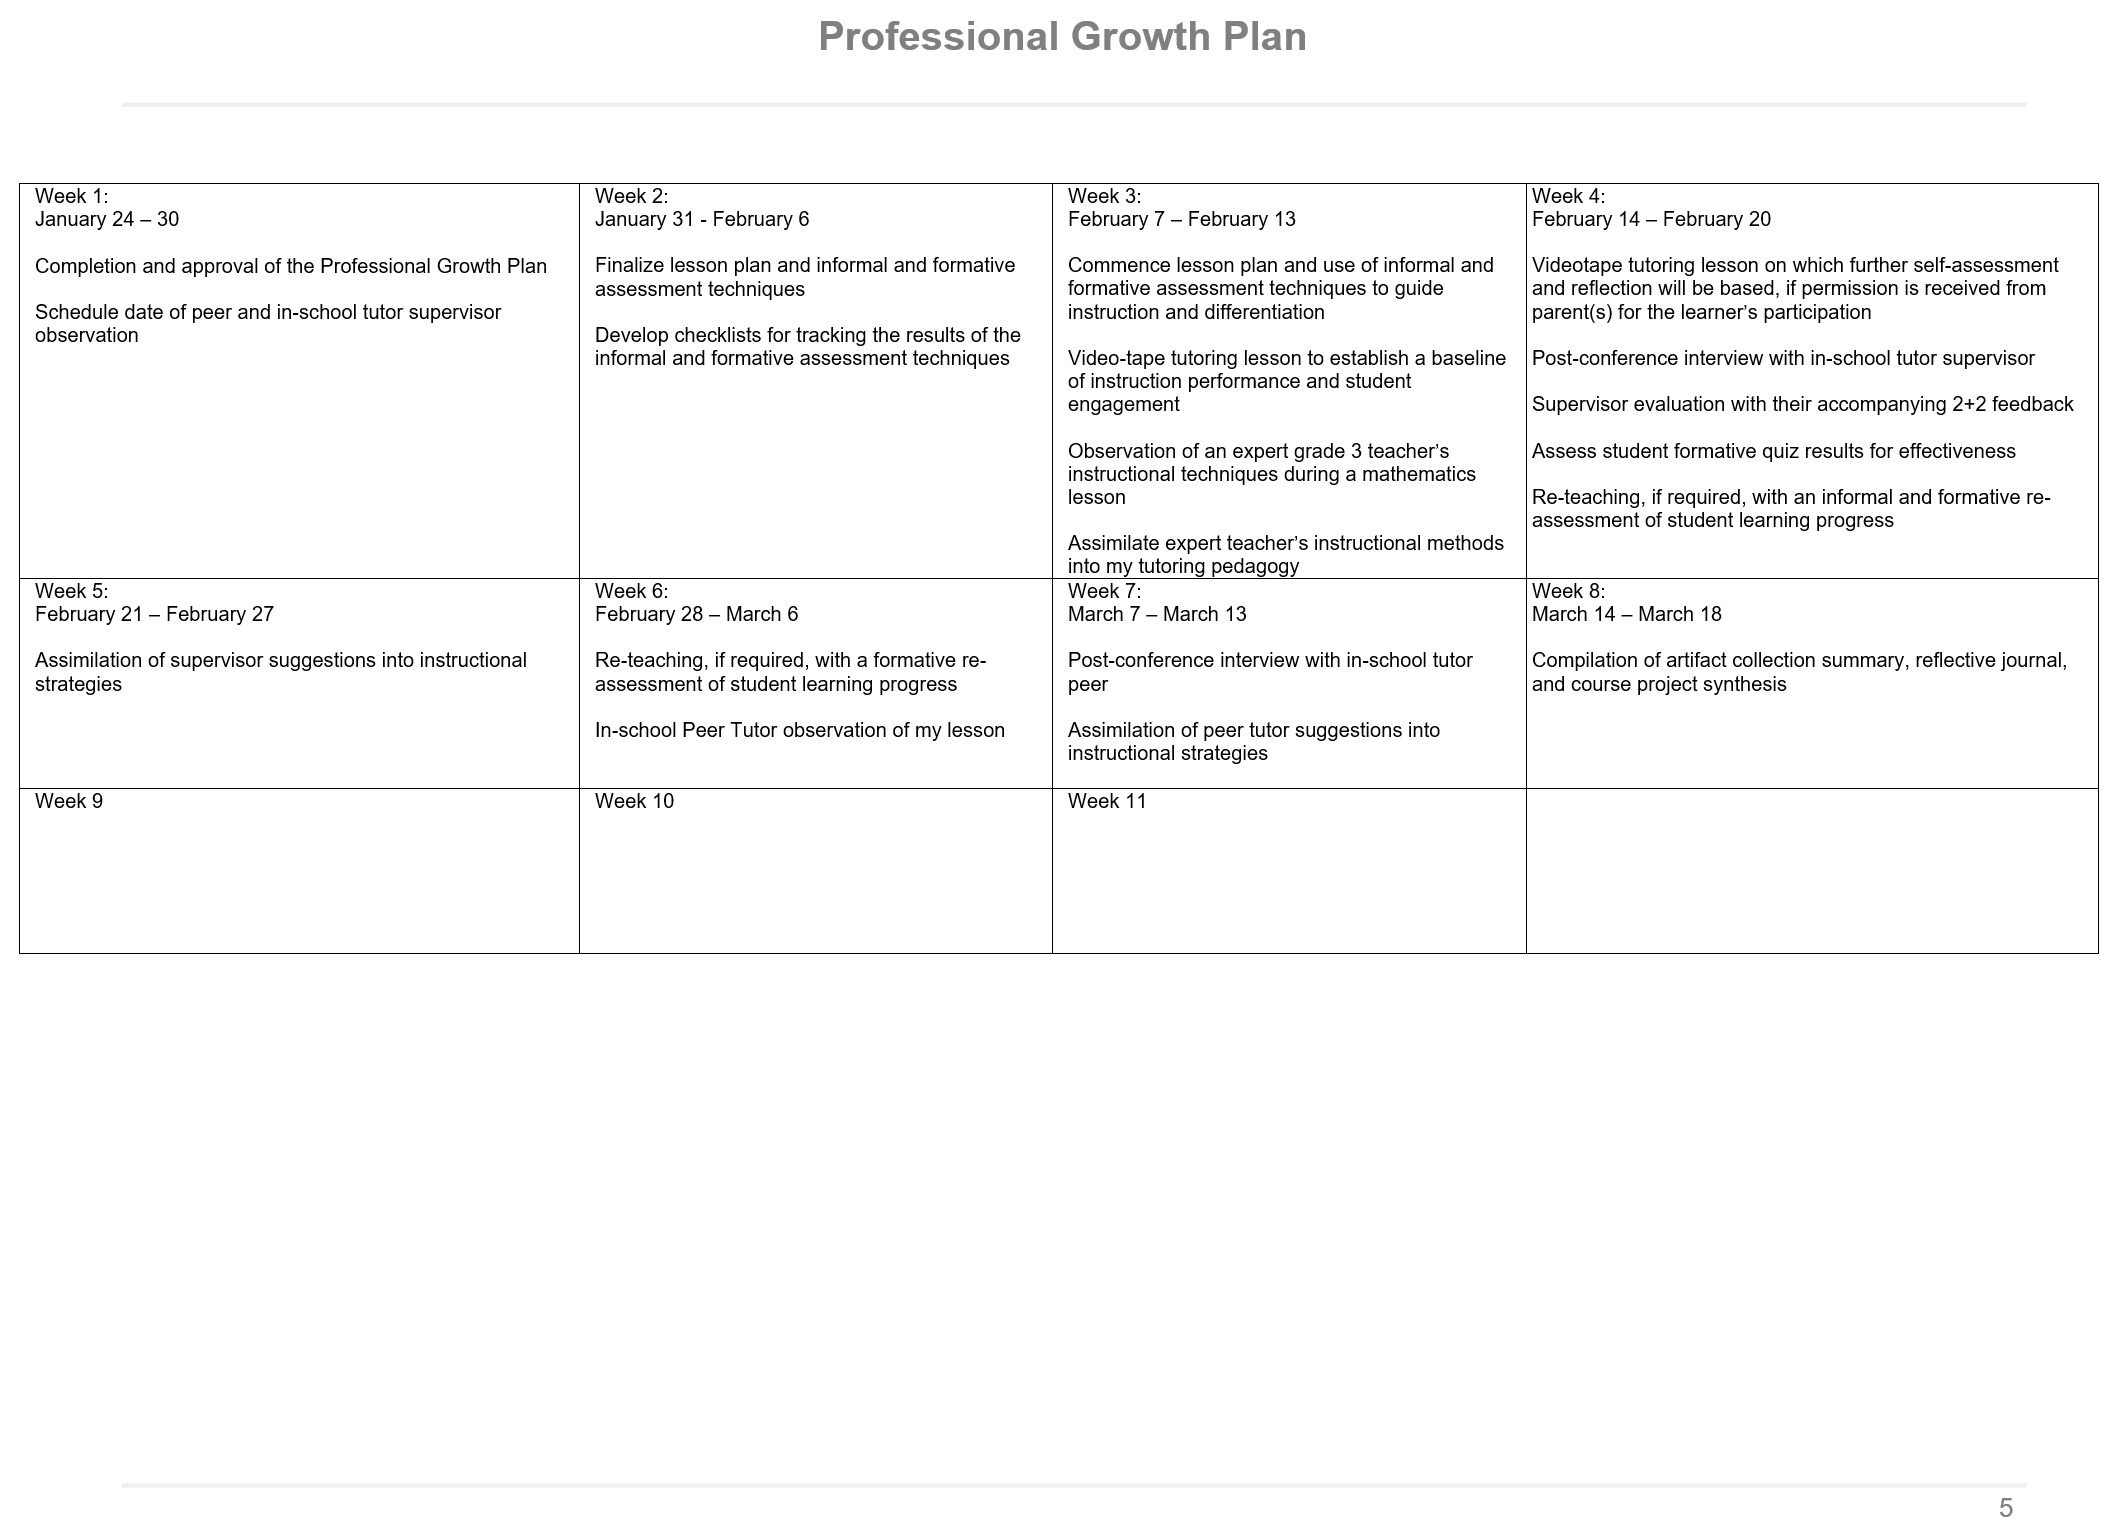 professional growth plan p 5 of 7